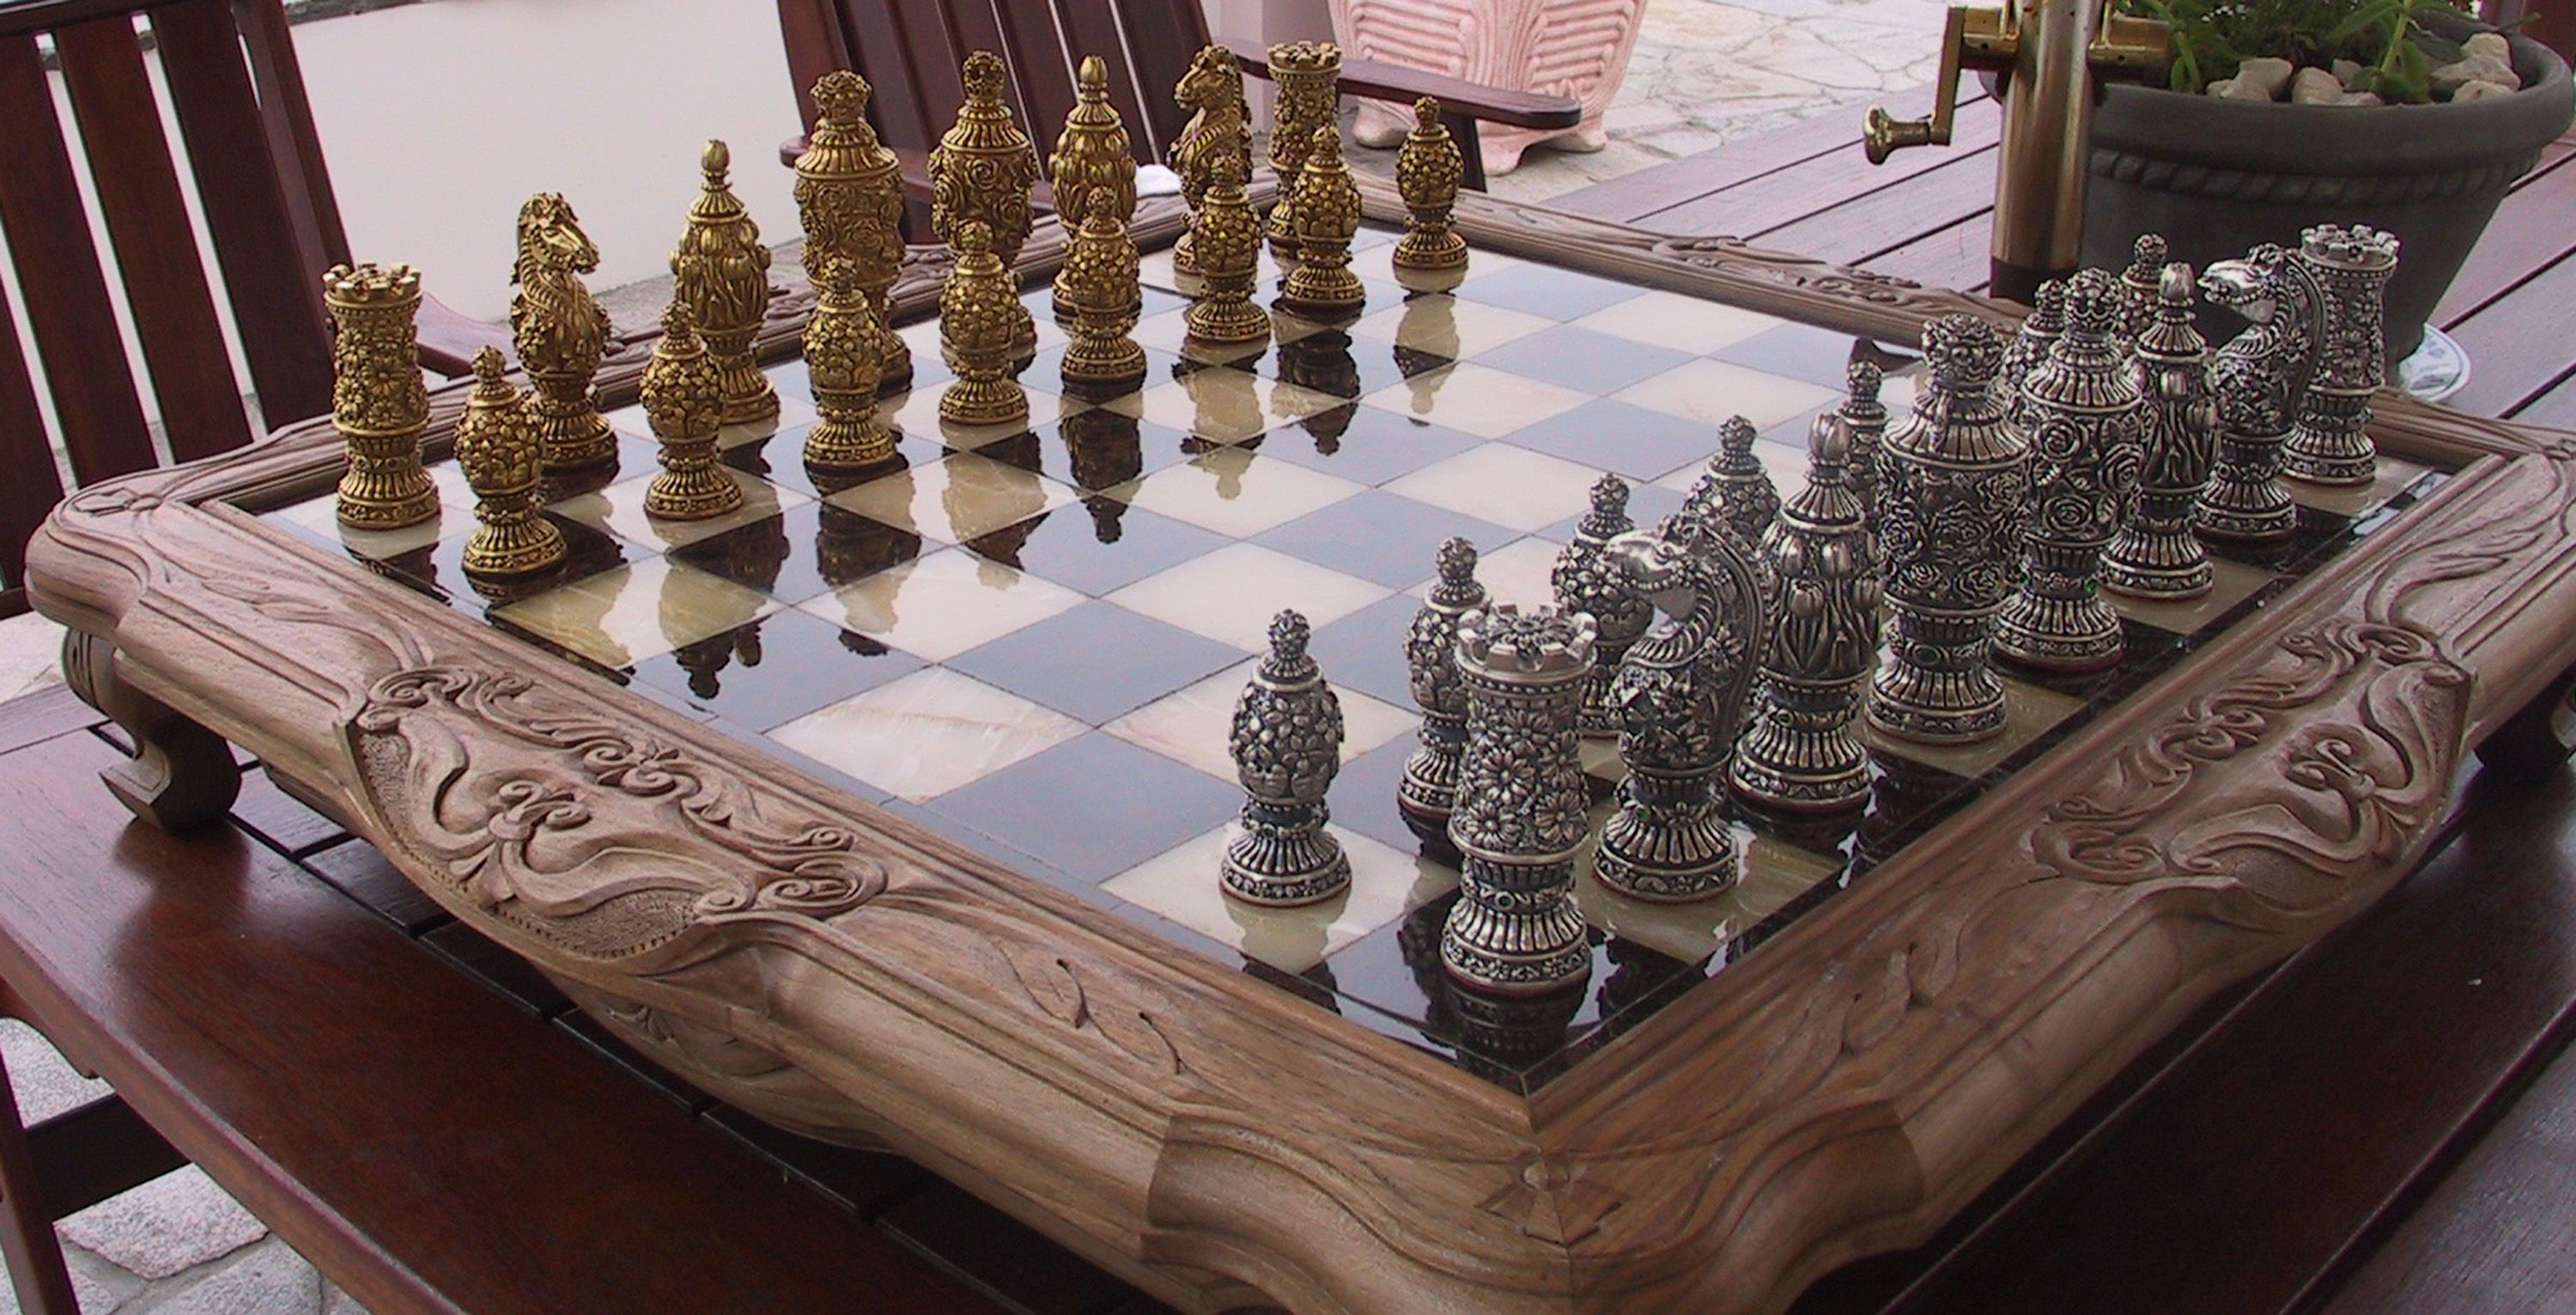 Furniture, Cool Unique Luxury Art Work Chess Set And Boards By Carved  Bullet Chess Pieces